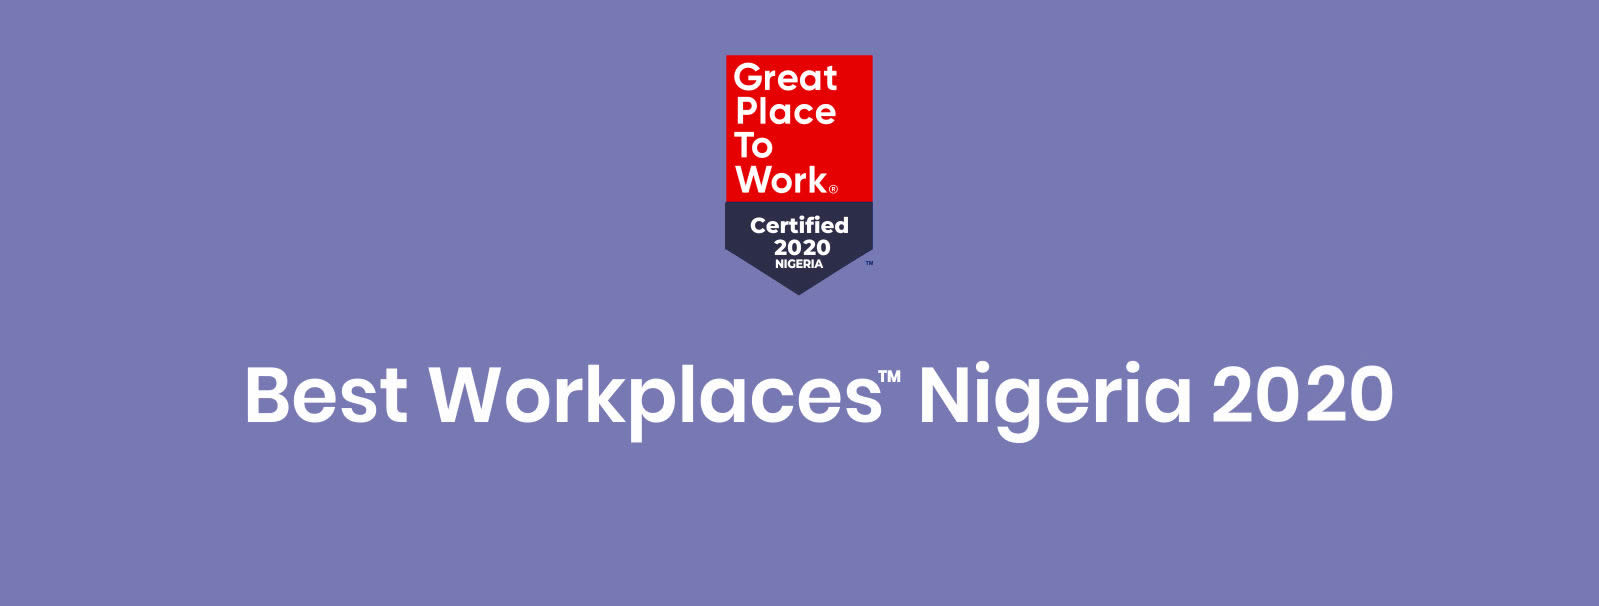 2020 Best Workplaces Nigeria  Apply Now